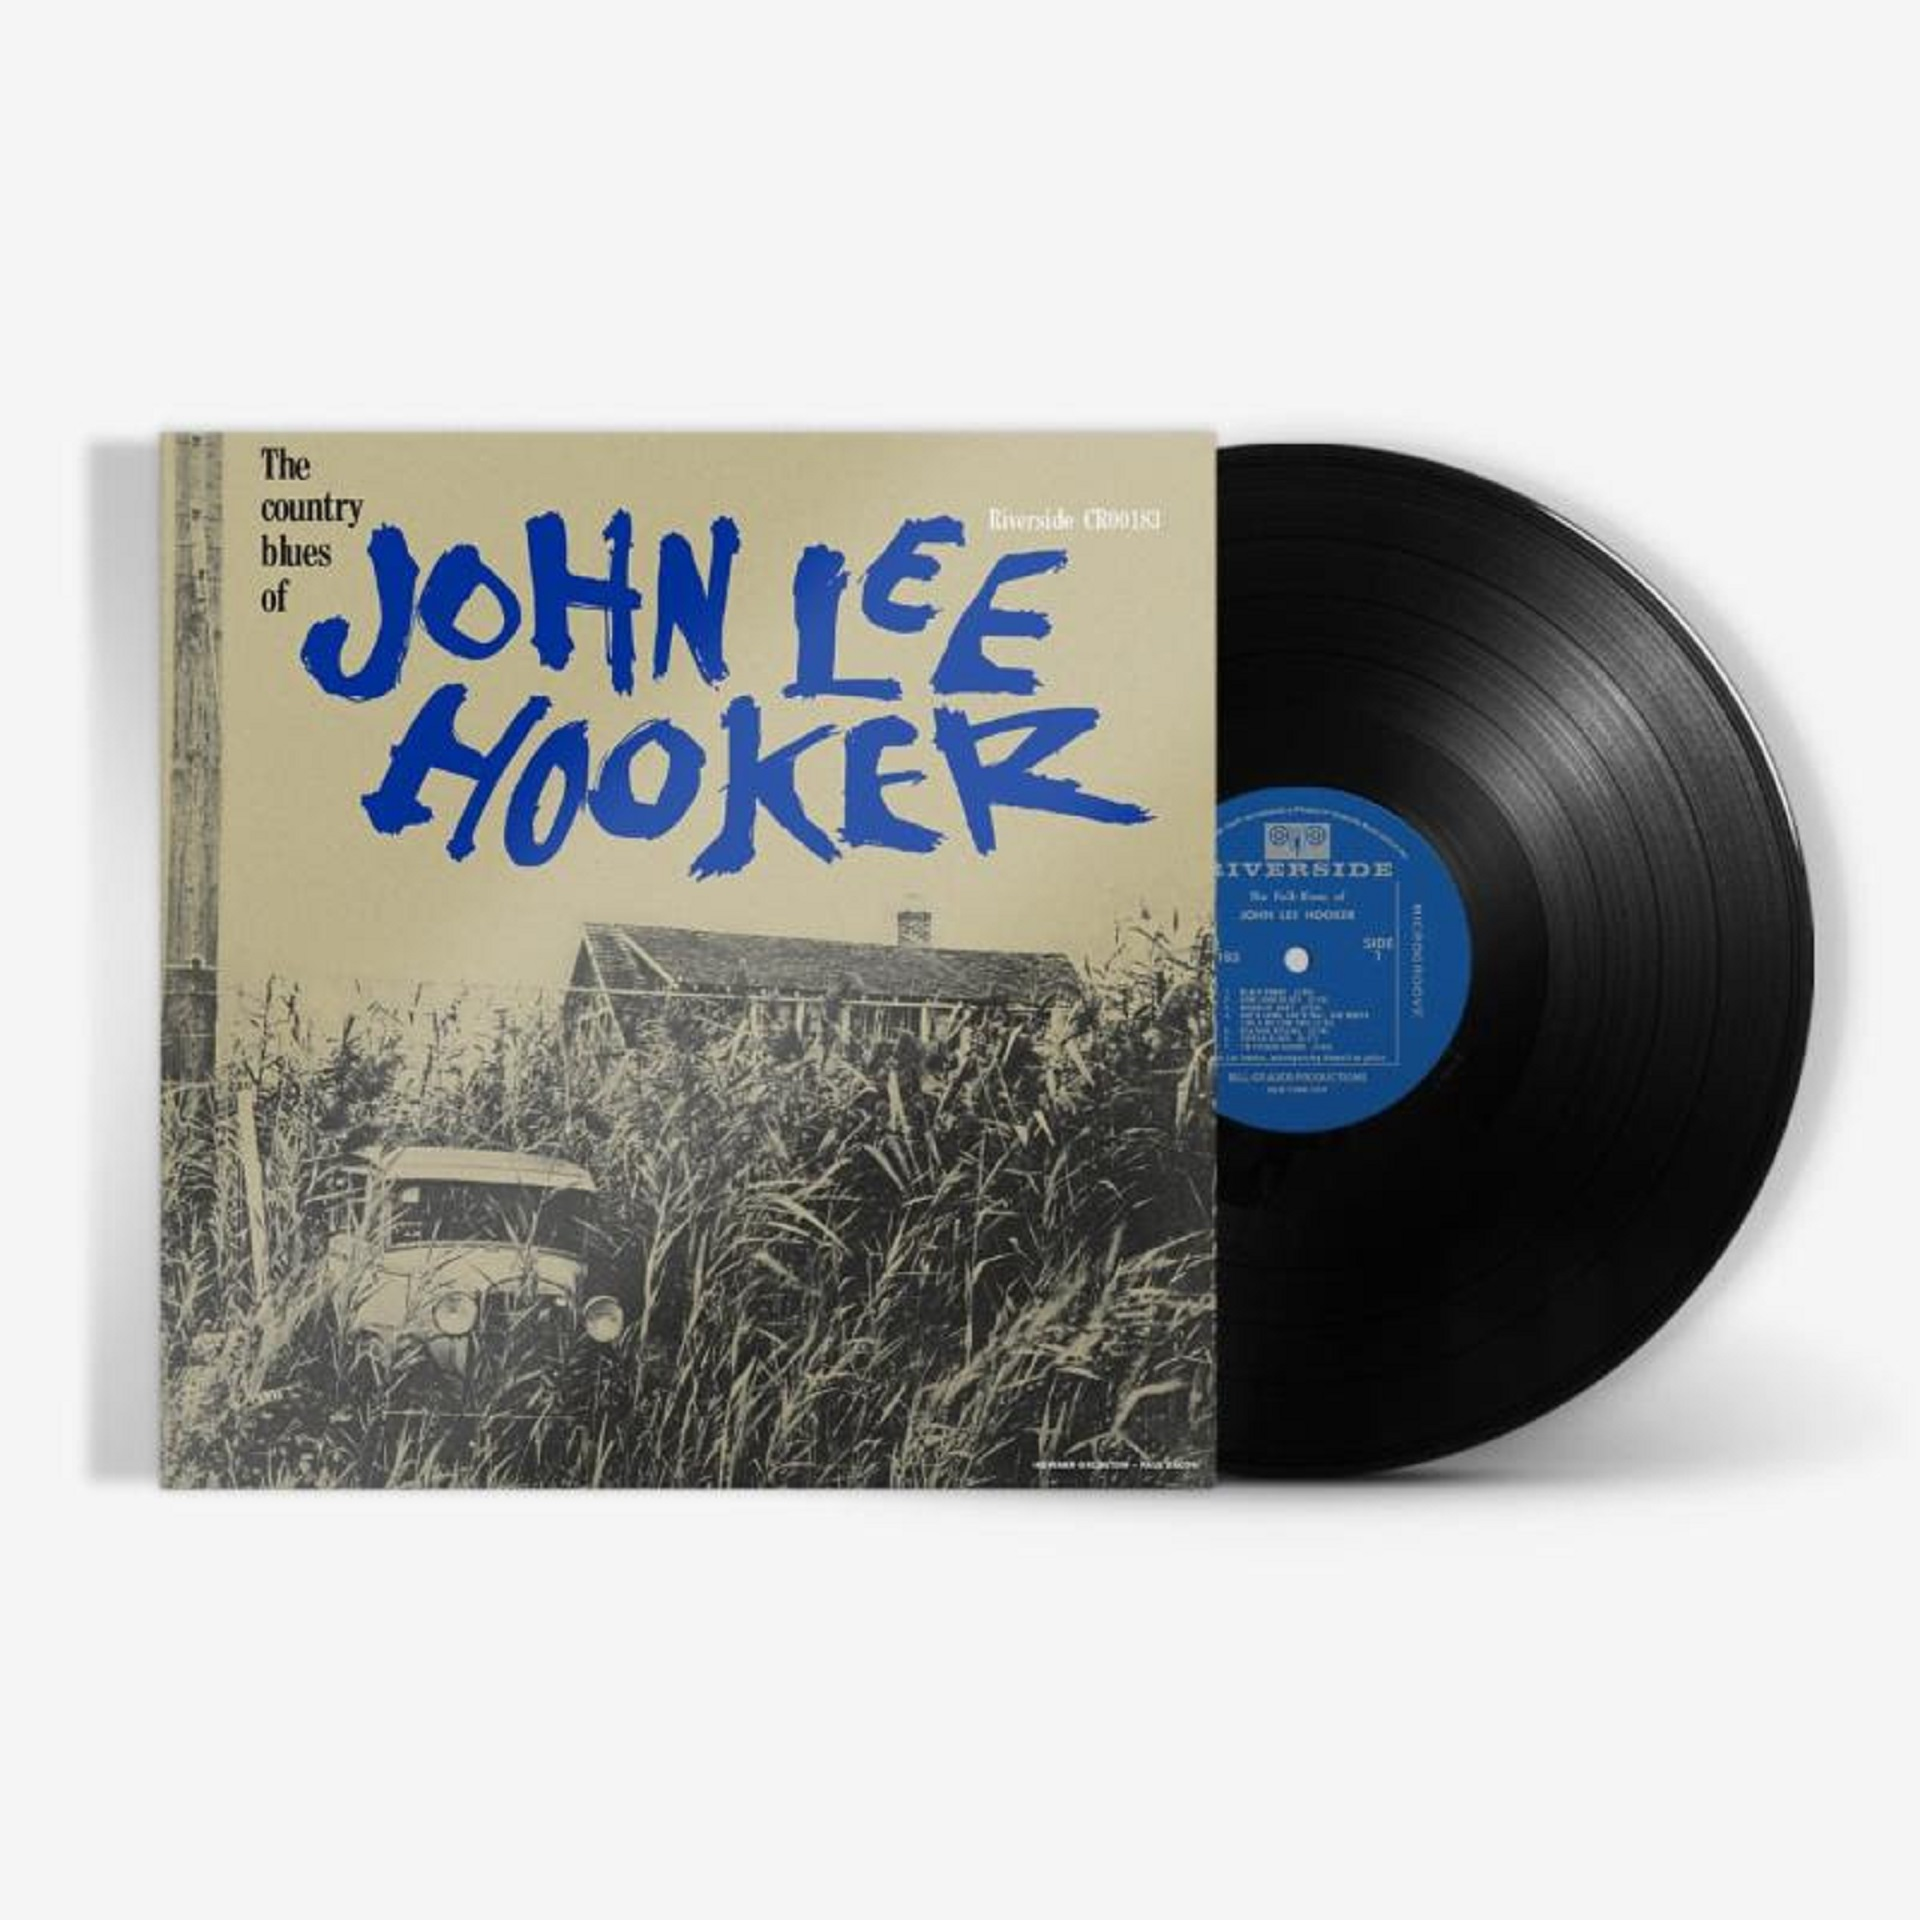 60th anniv. reissue for 'The Country Blues of John Lee Hooker'